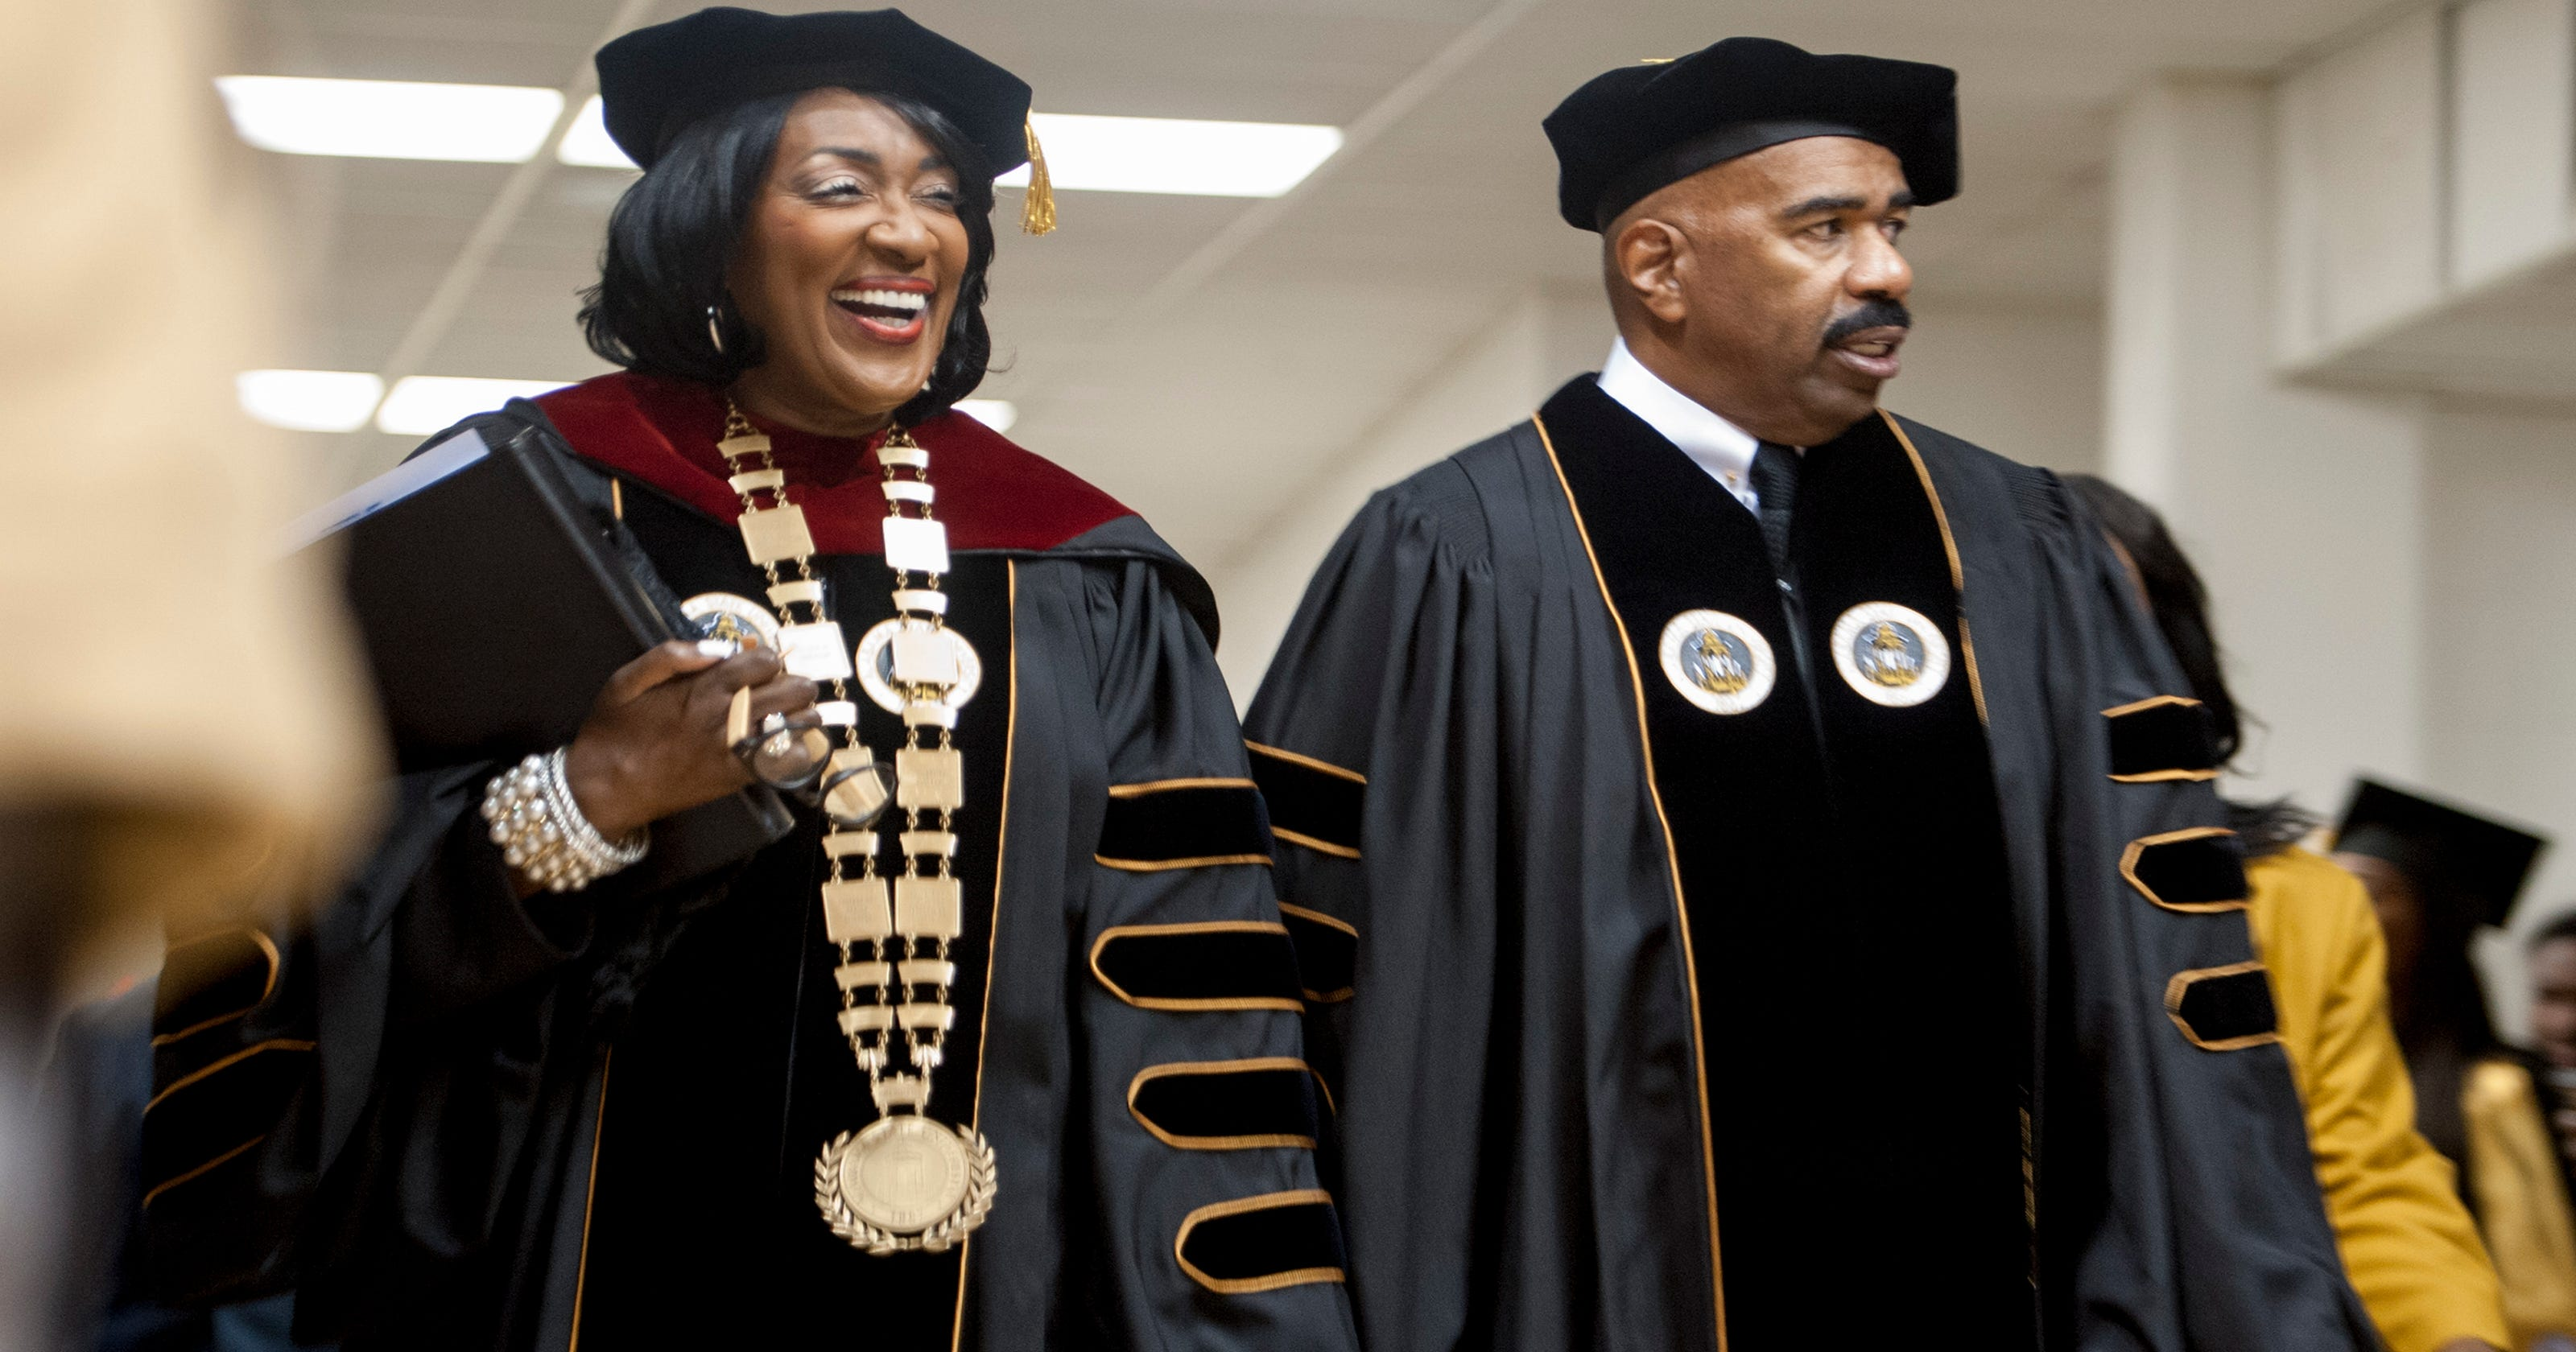 ASU graduation: Steve Harvey awarded doctorate